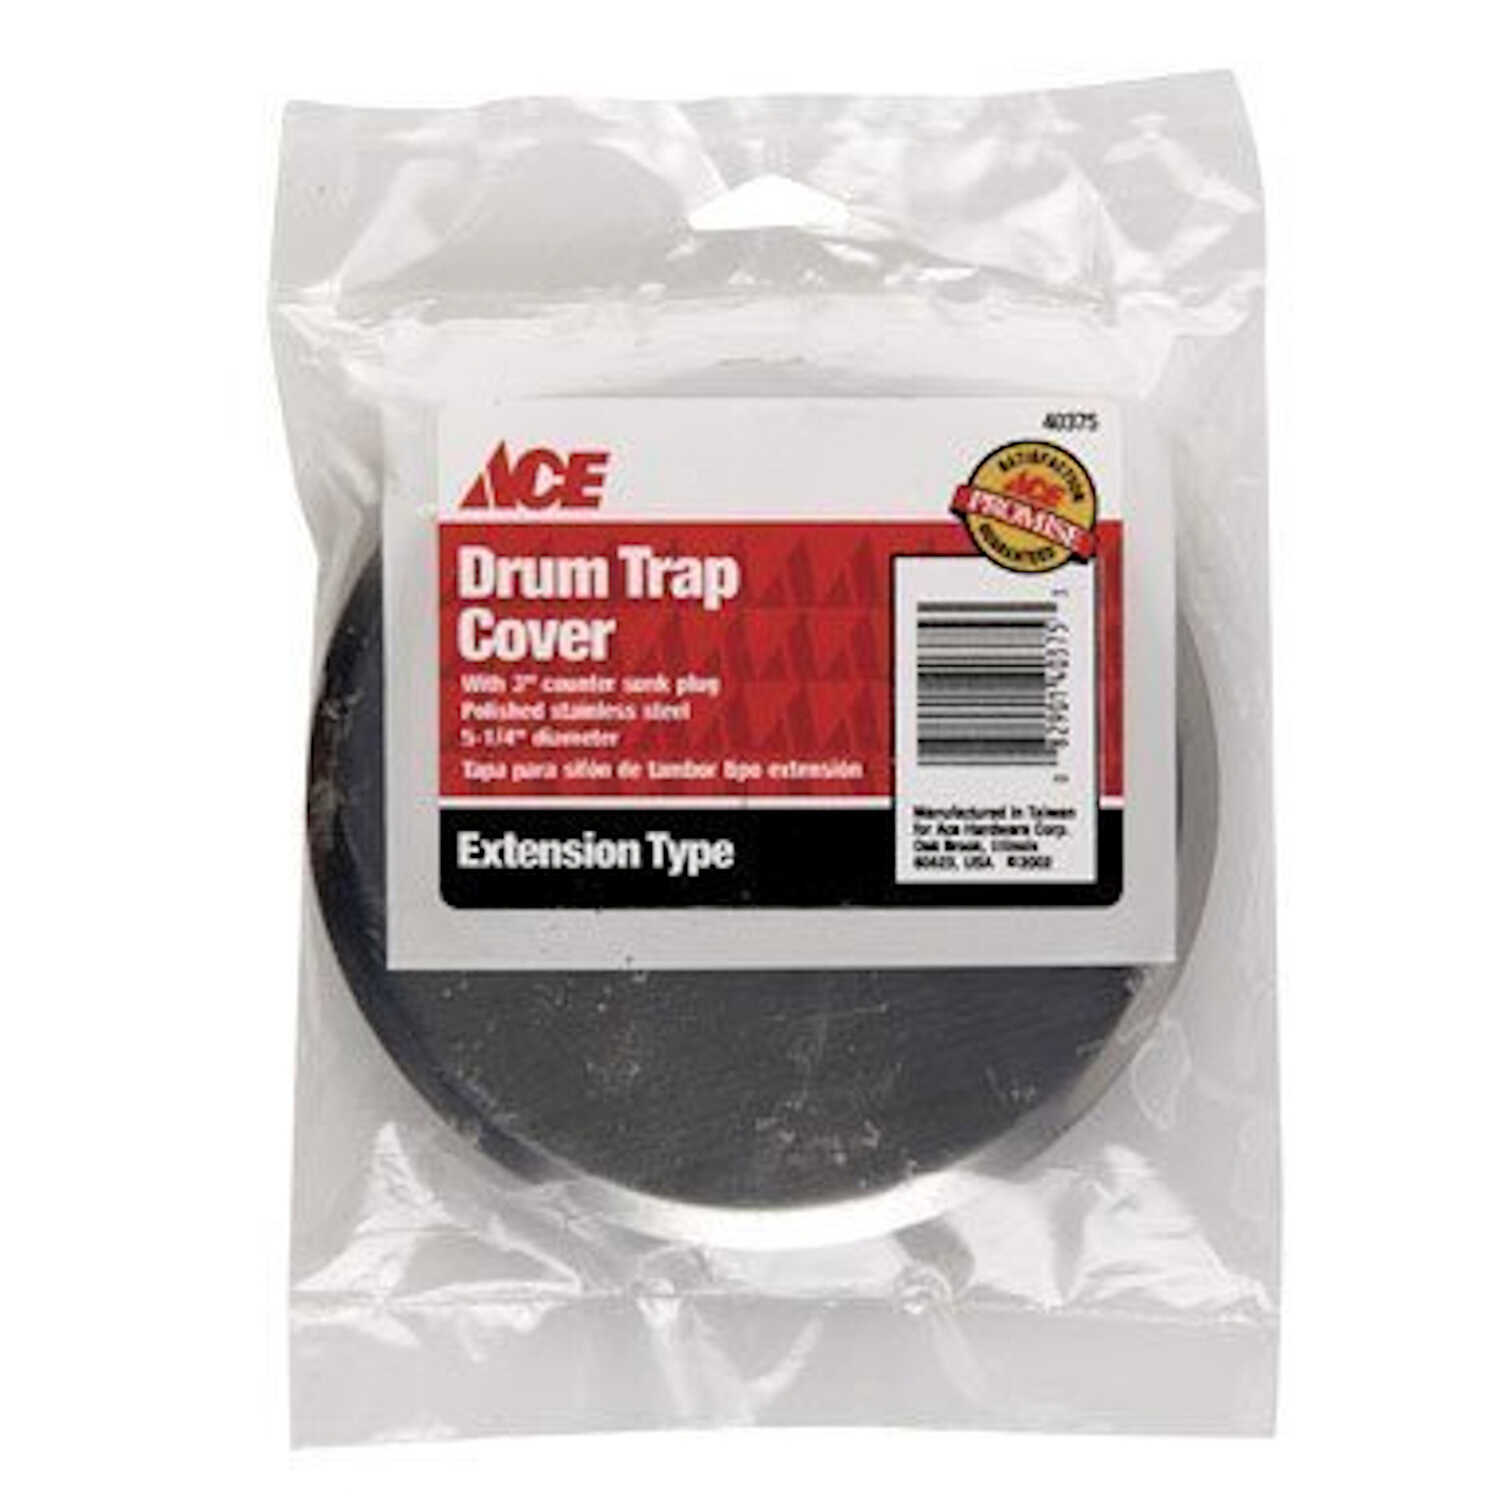 Ace  5-1/4 in. Round  Extension Type Drum Trap Cover